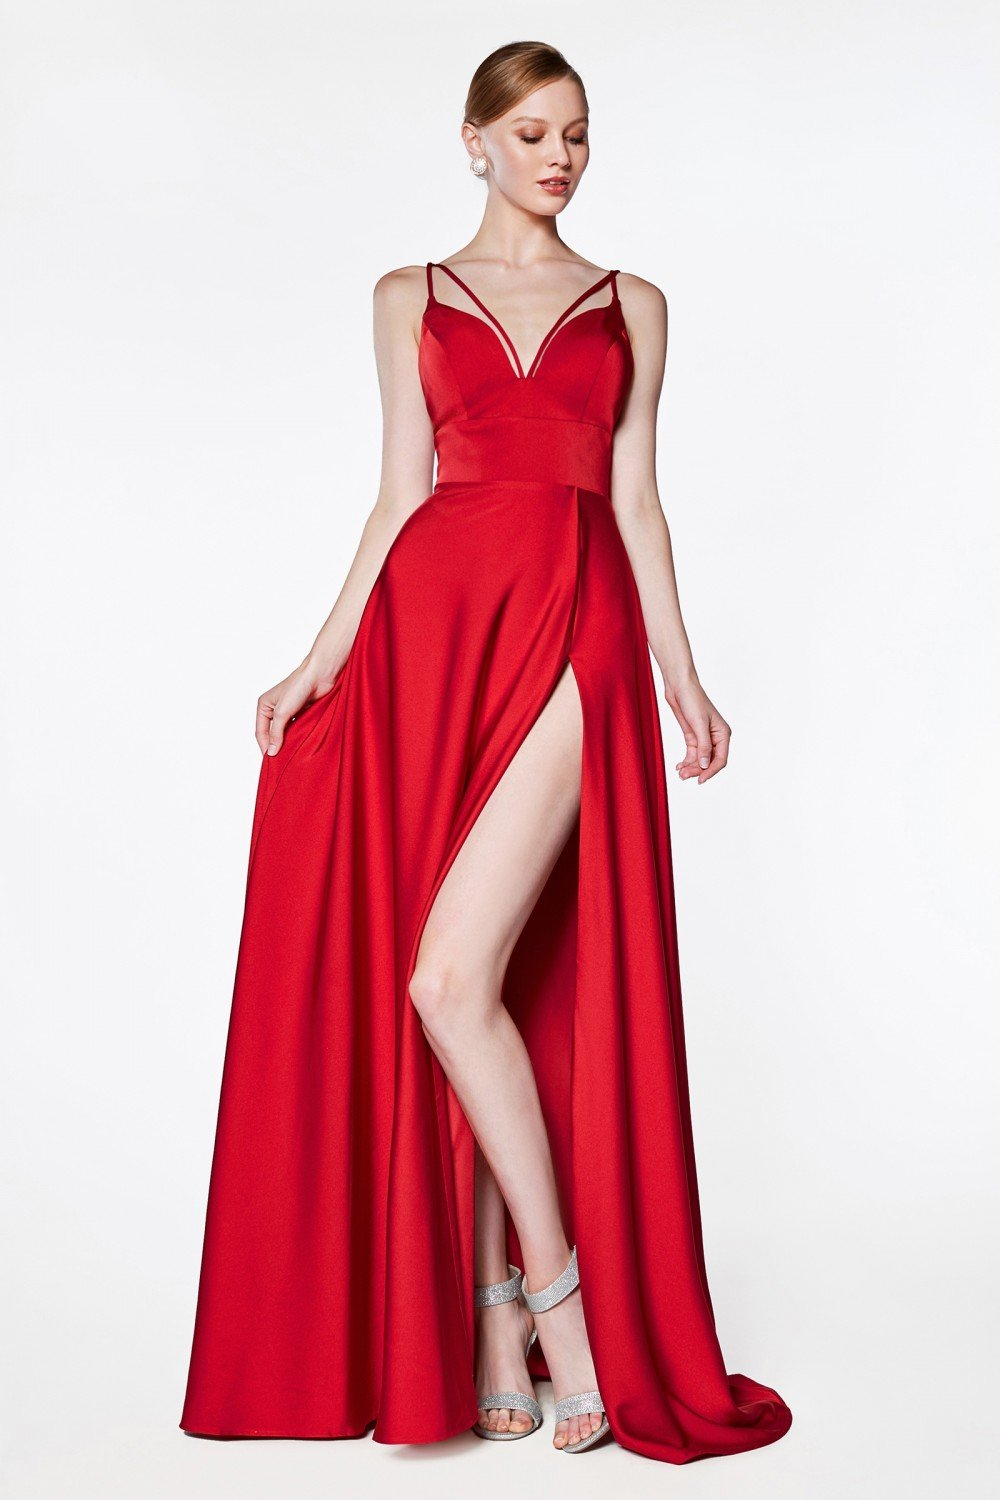 Red A-line v-neckline gown with slit and double strap.